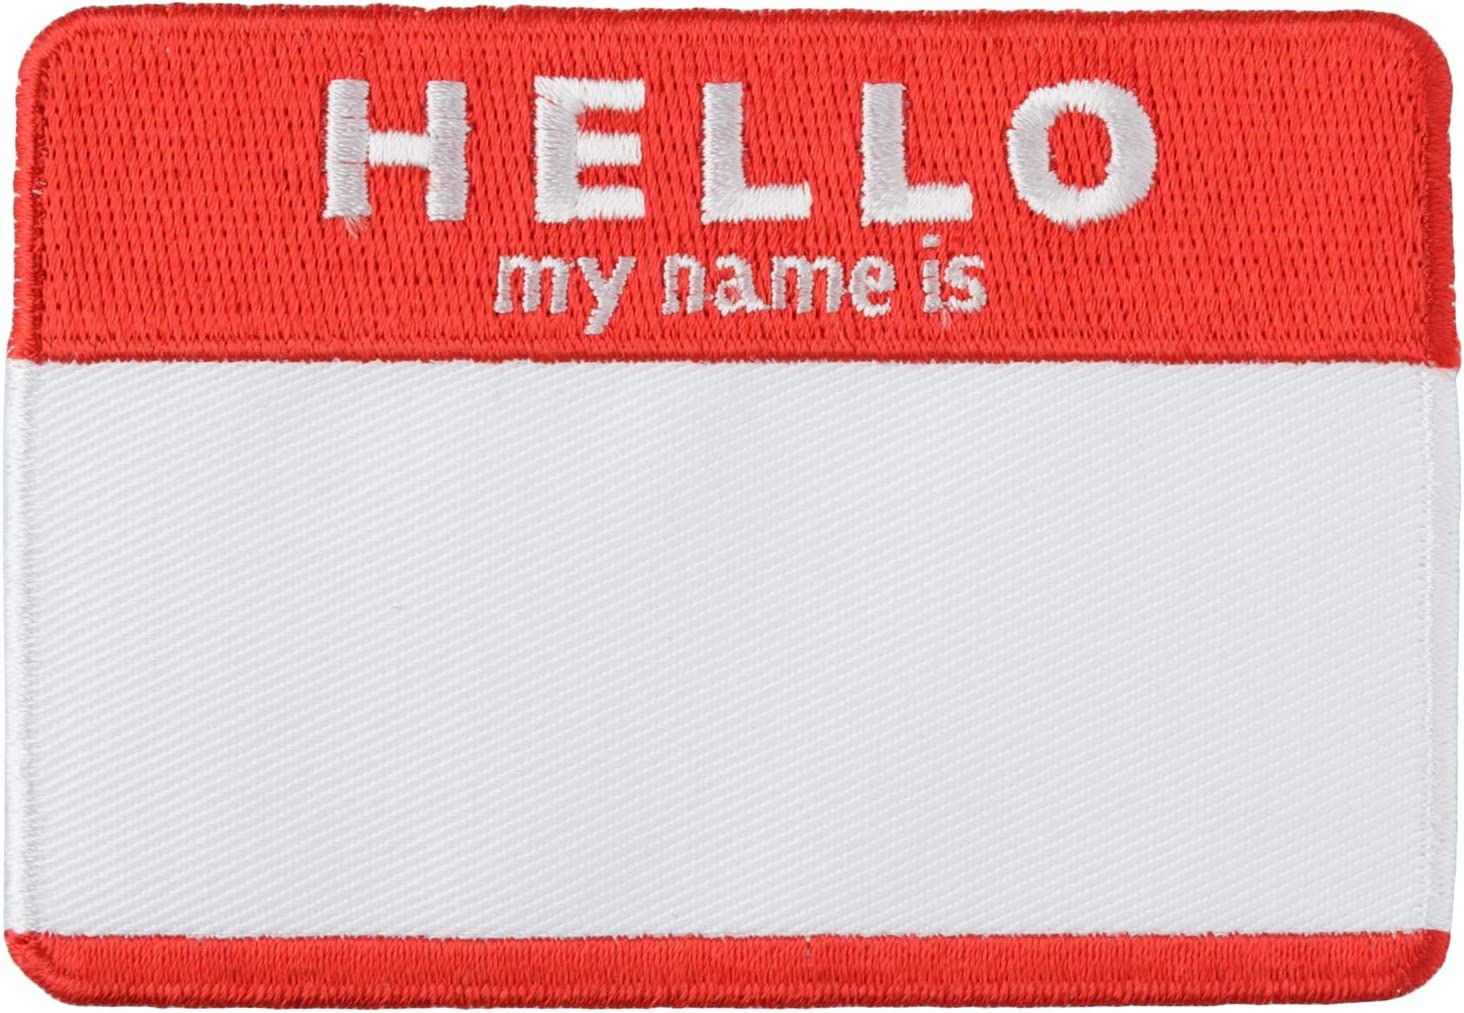 Simplicity 1938867001JA Hello Name Tag Applique Clothing Iron On Patch 2.5 x 3.6